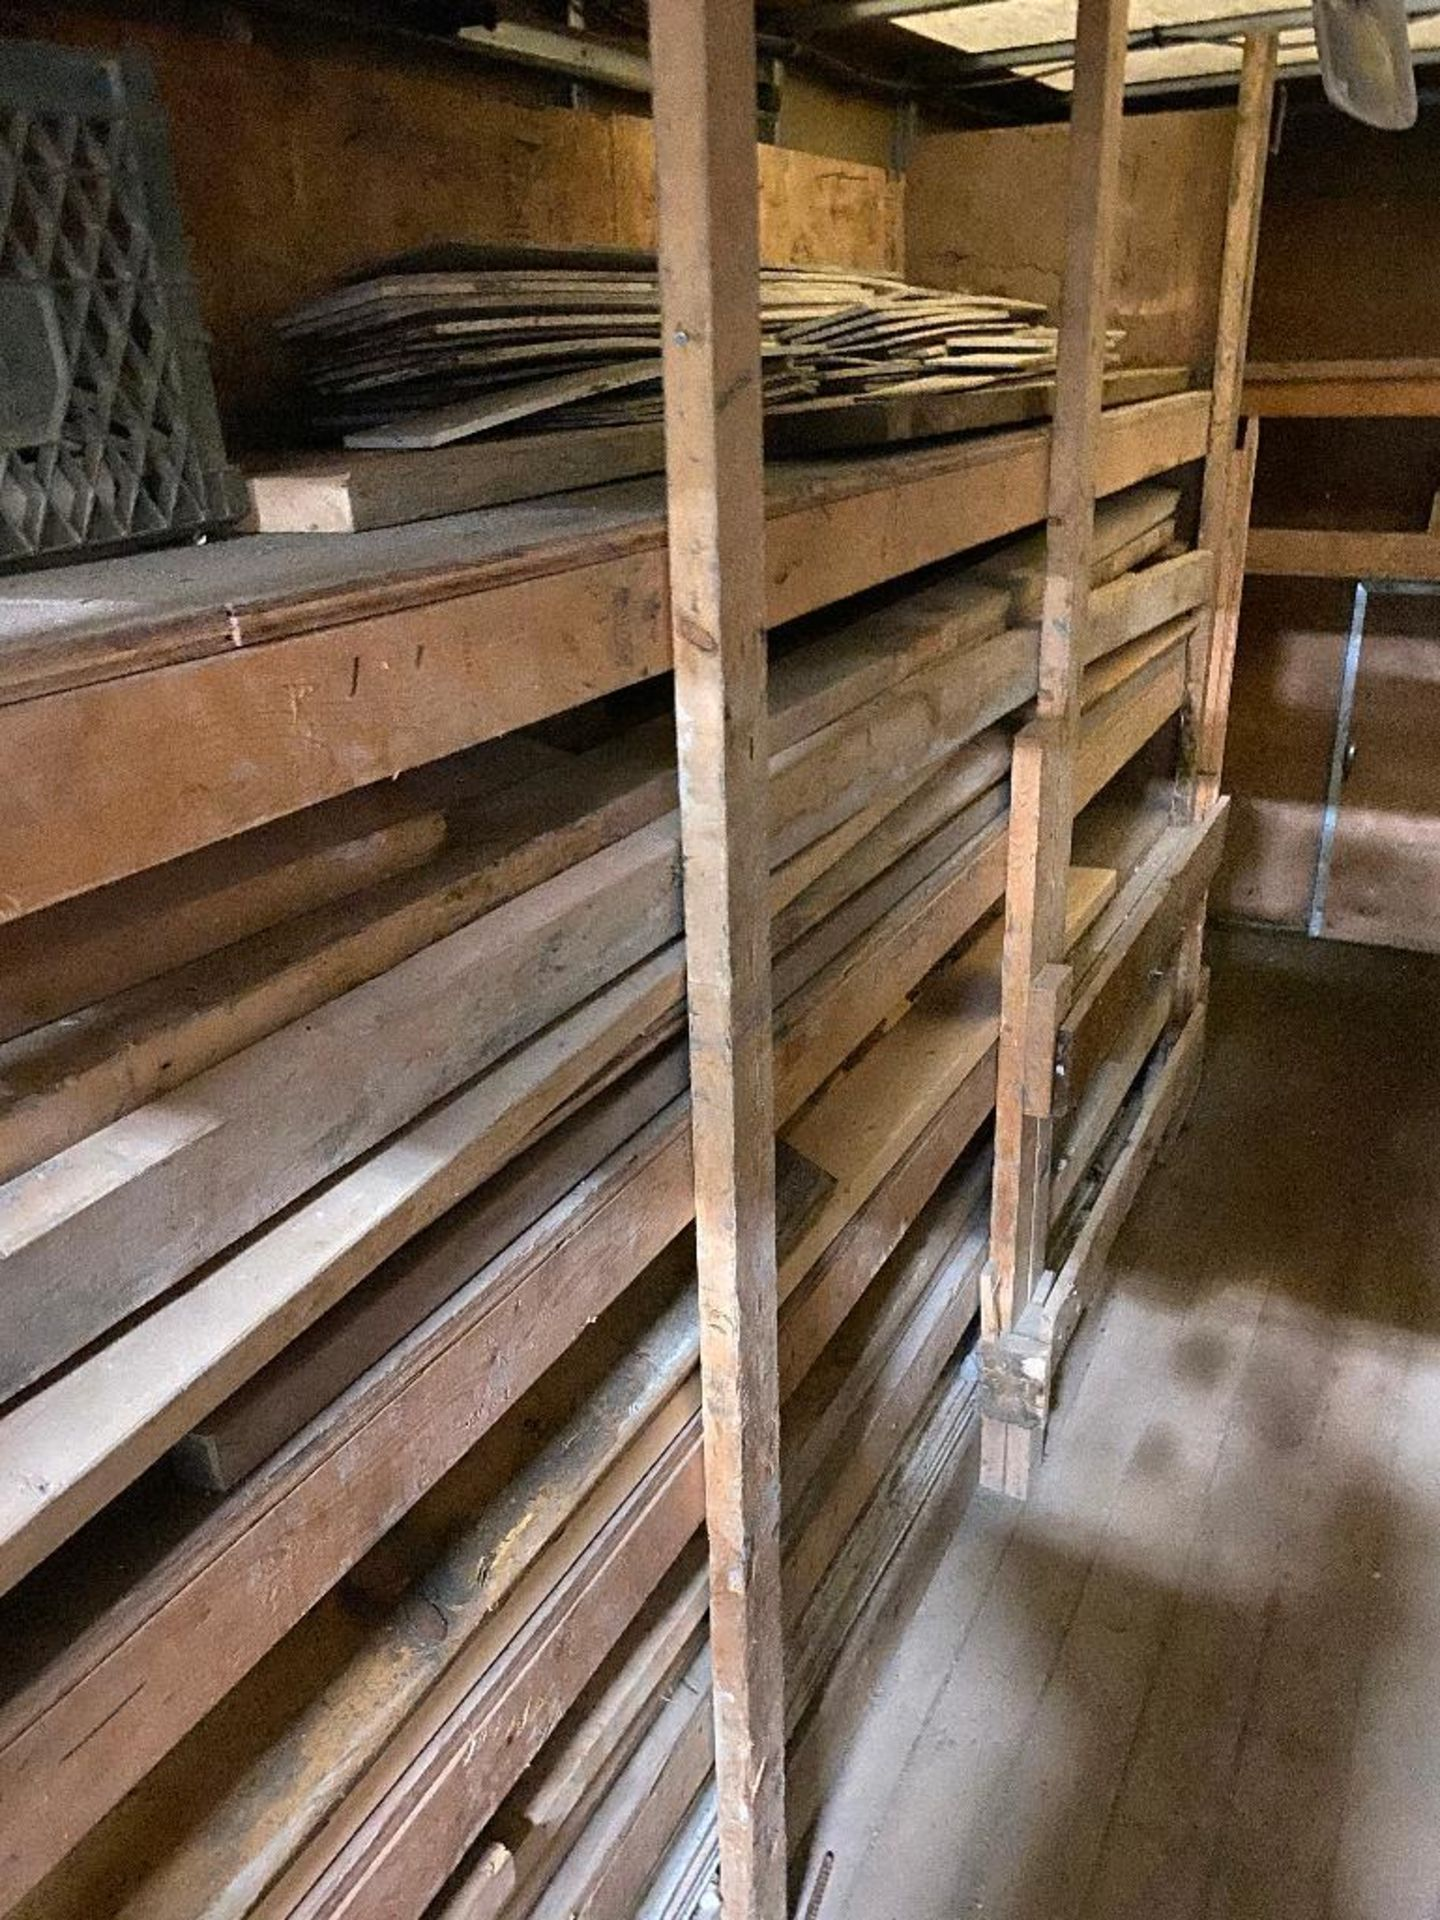 Lot of Asst. Form Lumber and Rebar - Image 4 of 4